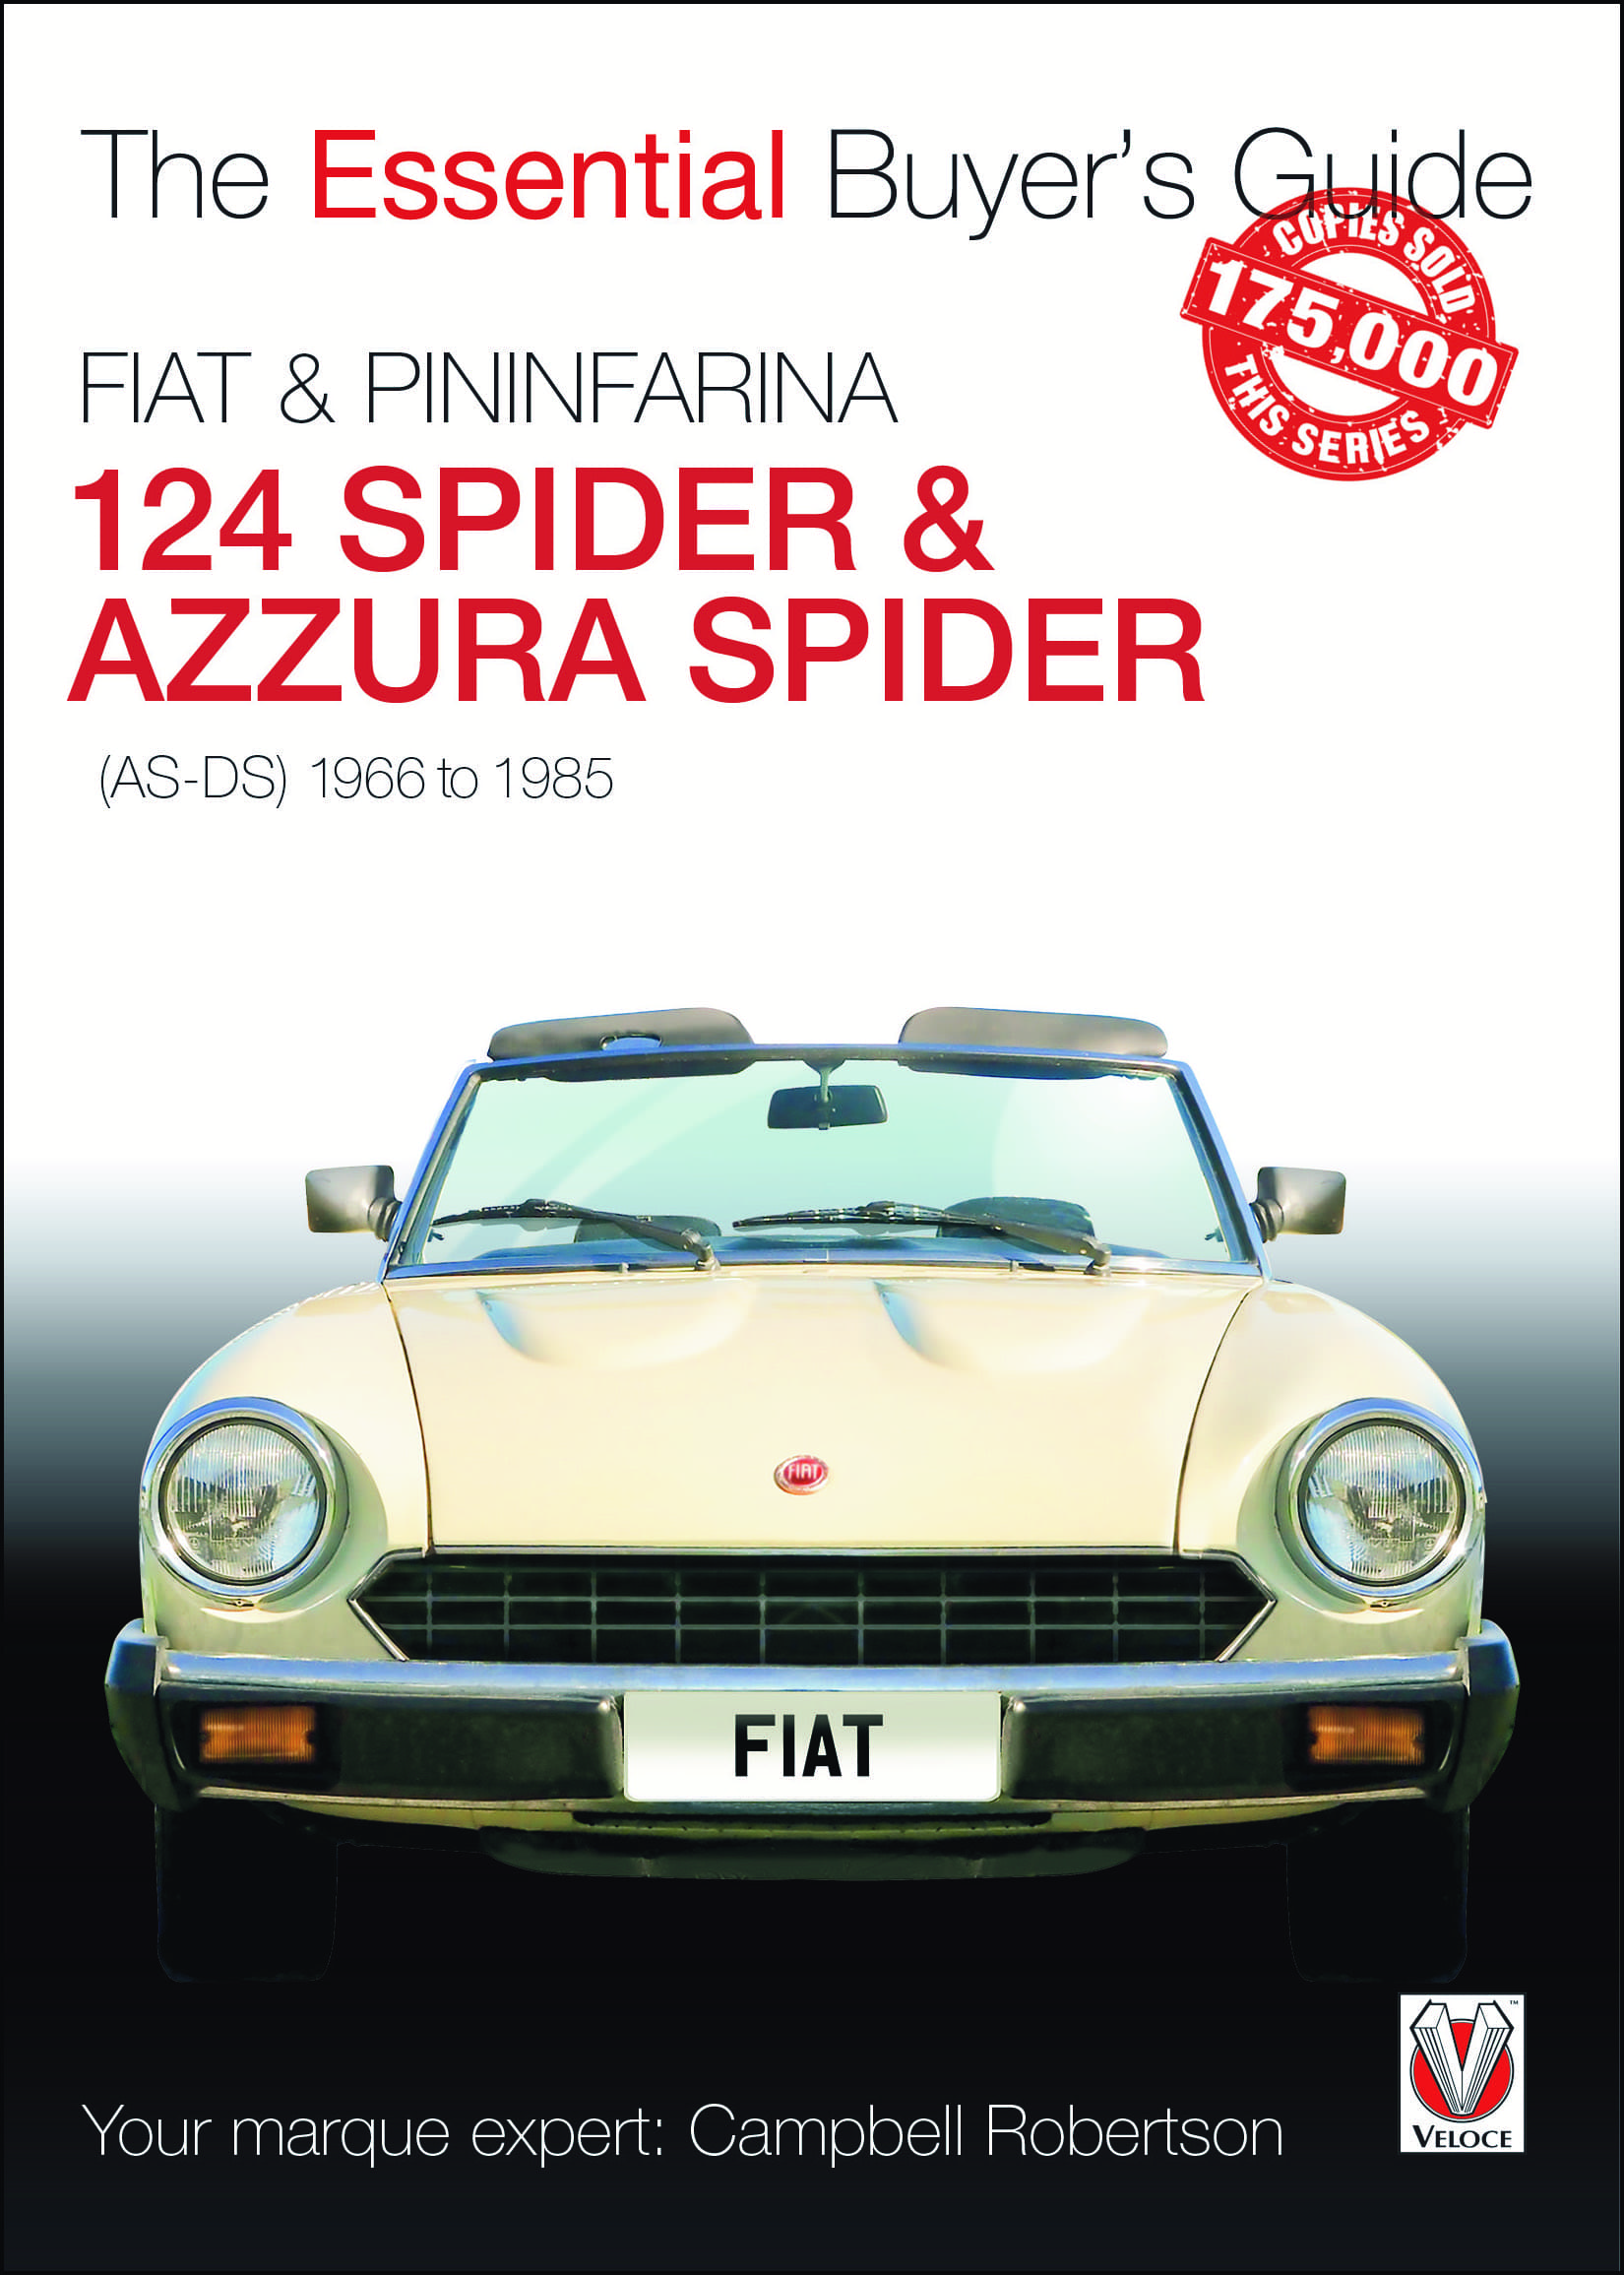 FIAT 124 Spider & Pininfarina Azzura Spider Essential Buyer's Guide